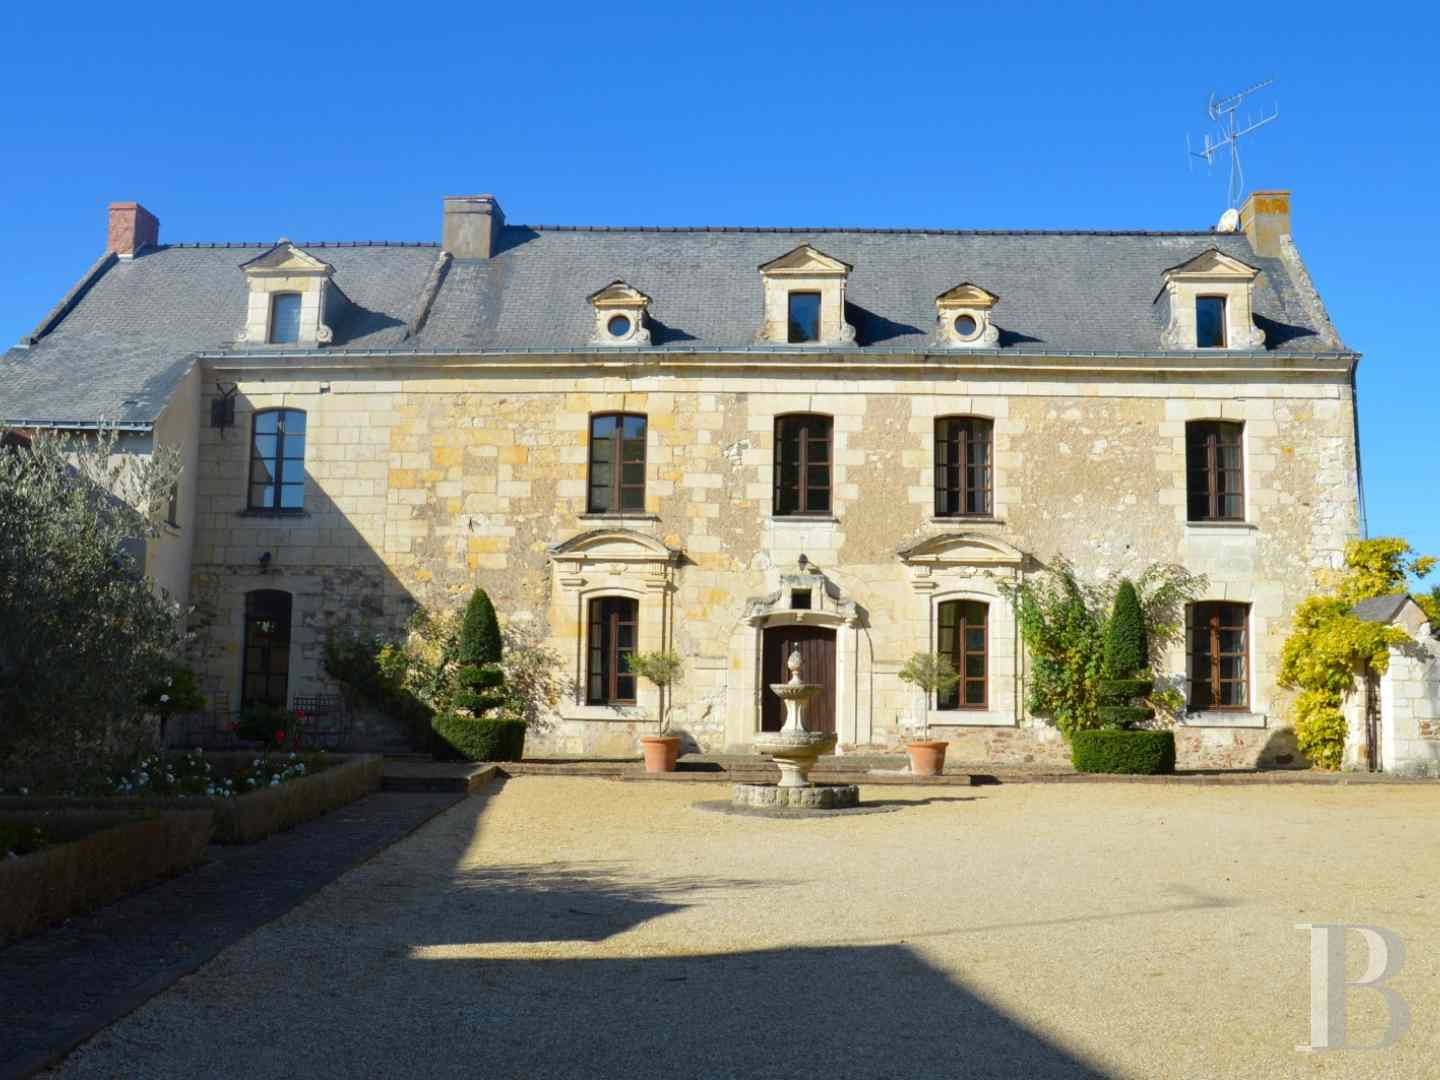 France mansions for sale pays de loire manor house - 1 zoom